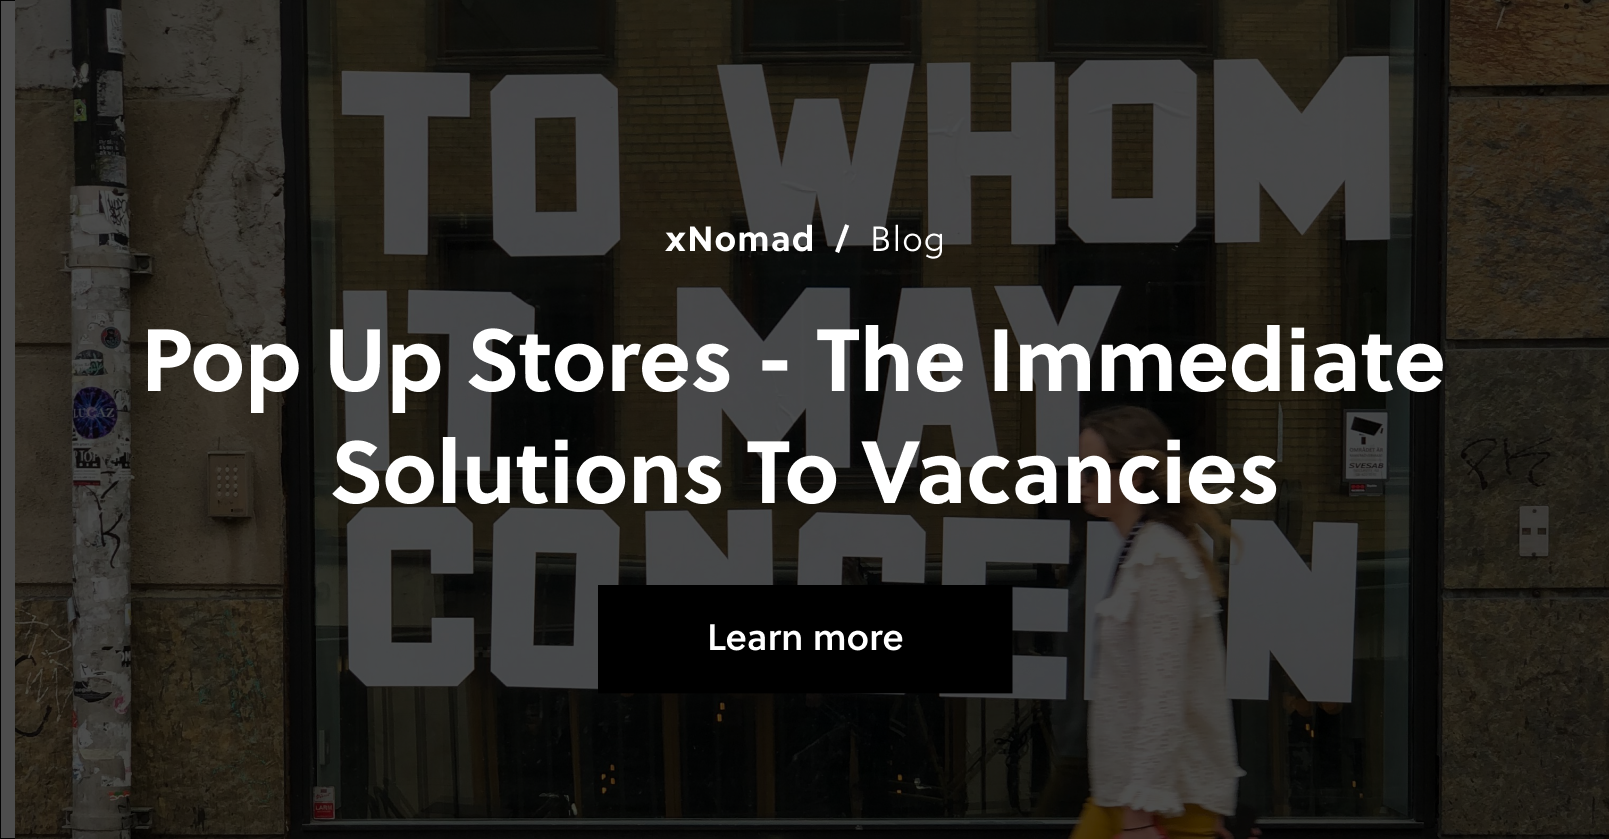 Pop Up Stores - The Immediate Solutions to Vacancies